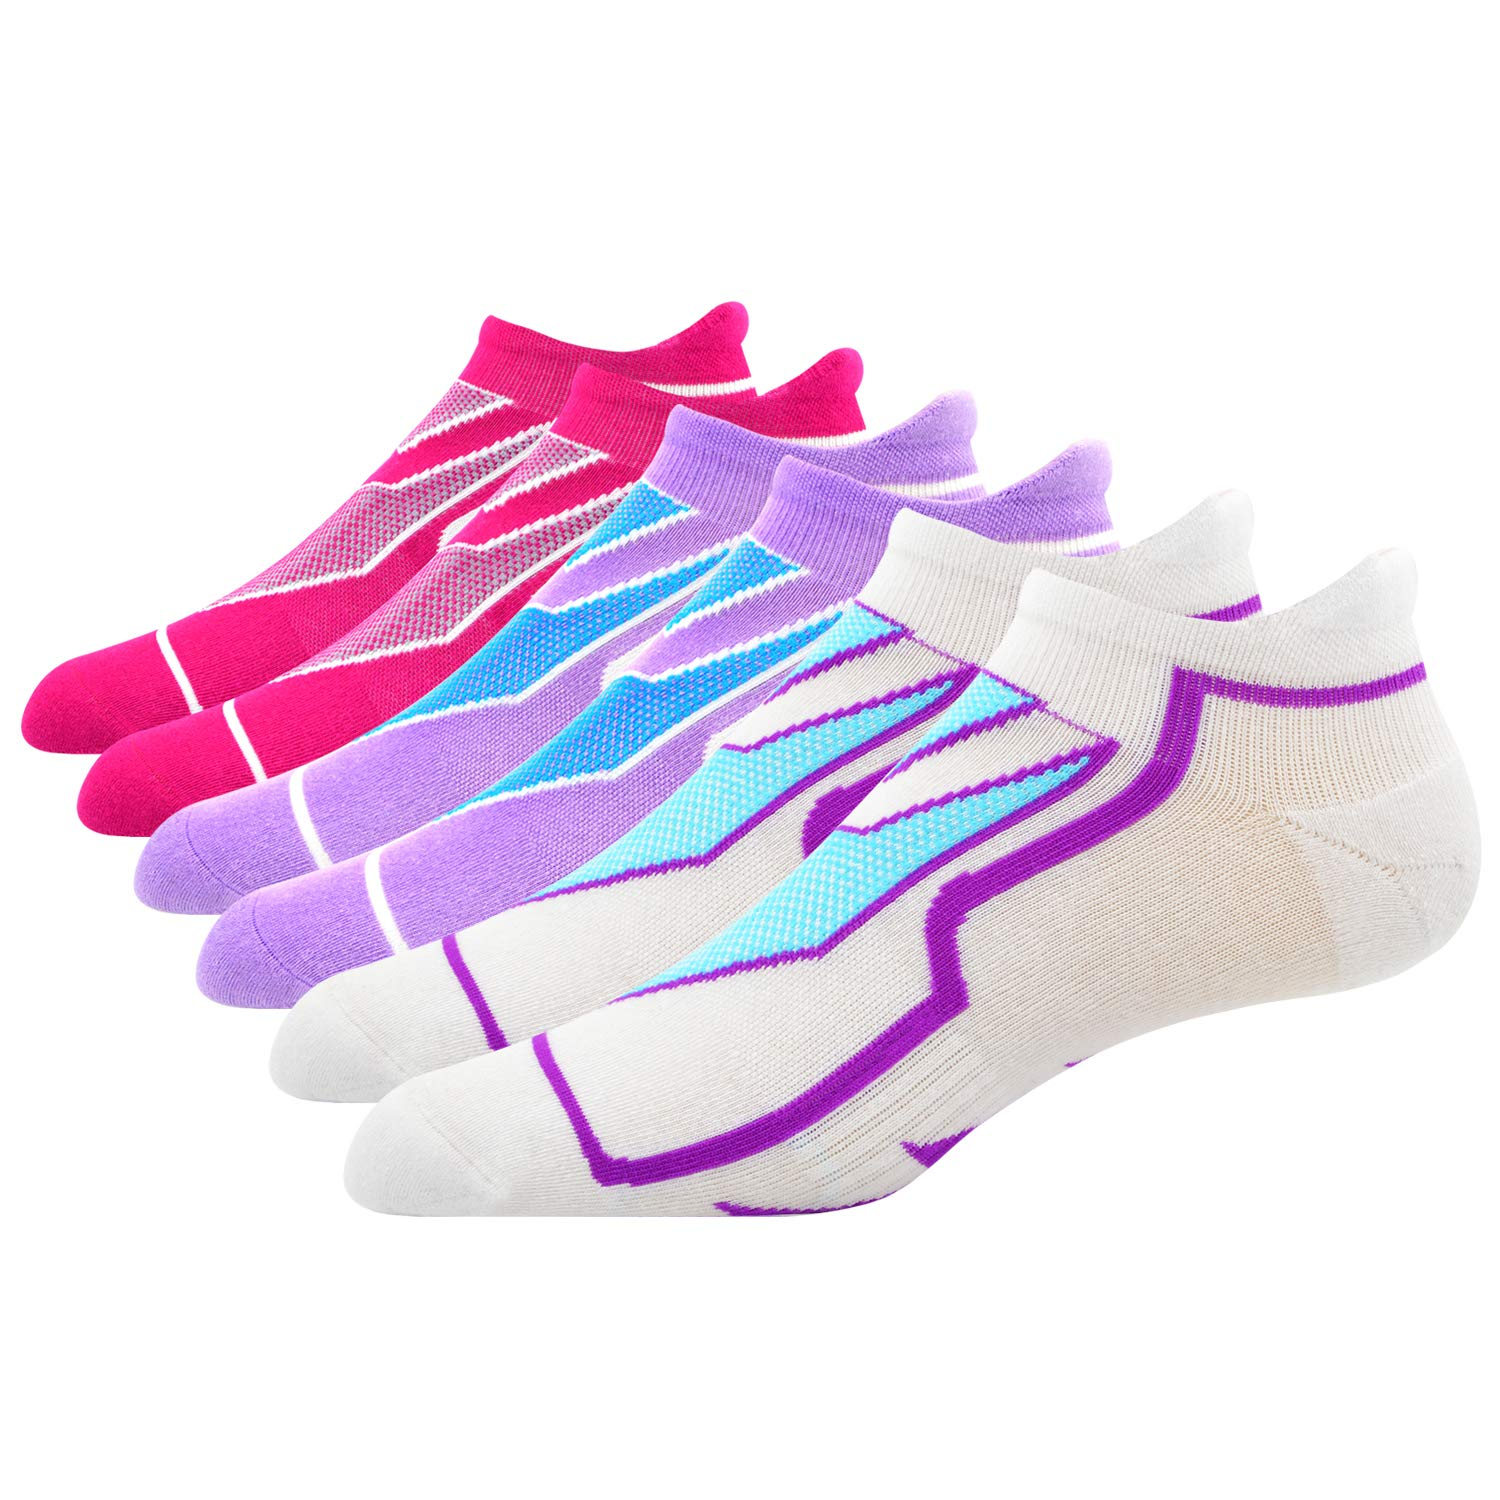 6 Pairs Red Purple White1 Busy Socks Unisex High Performance Breathable No Show Coolmax Running Socks 3,6 Pairs